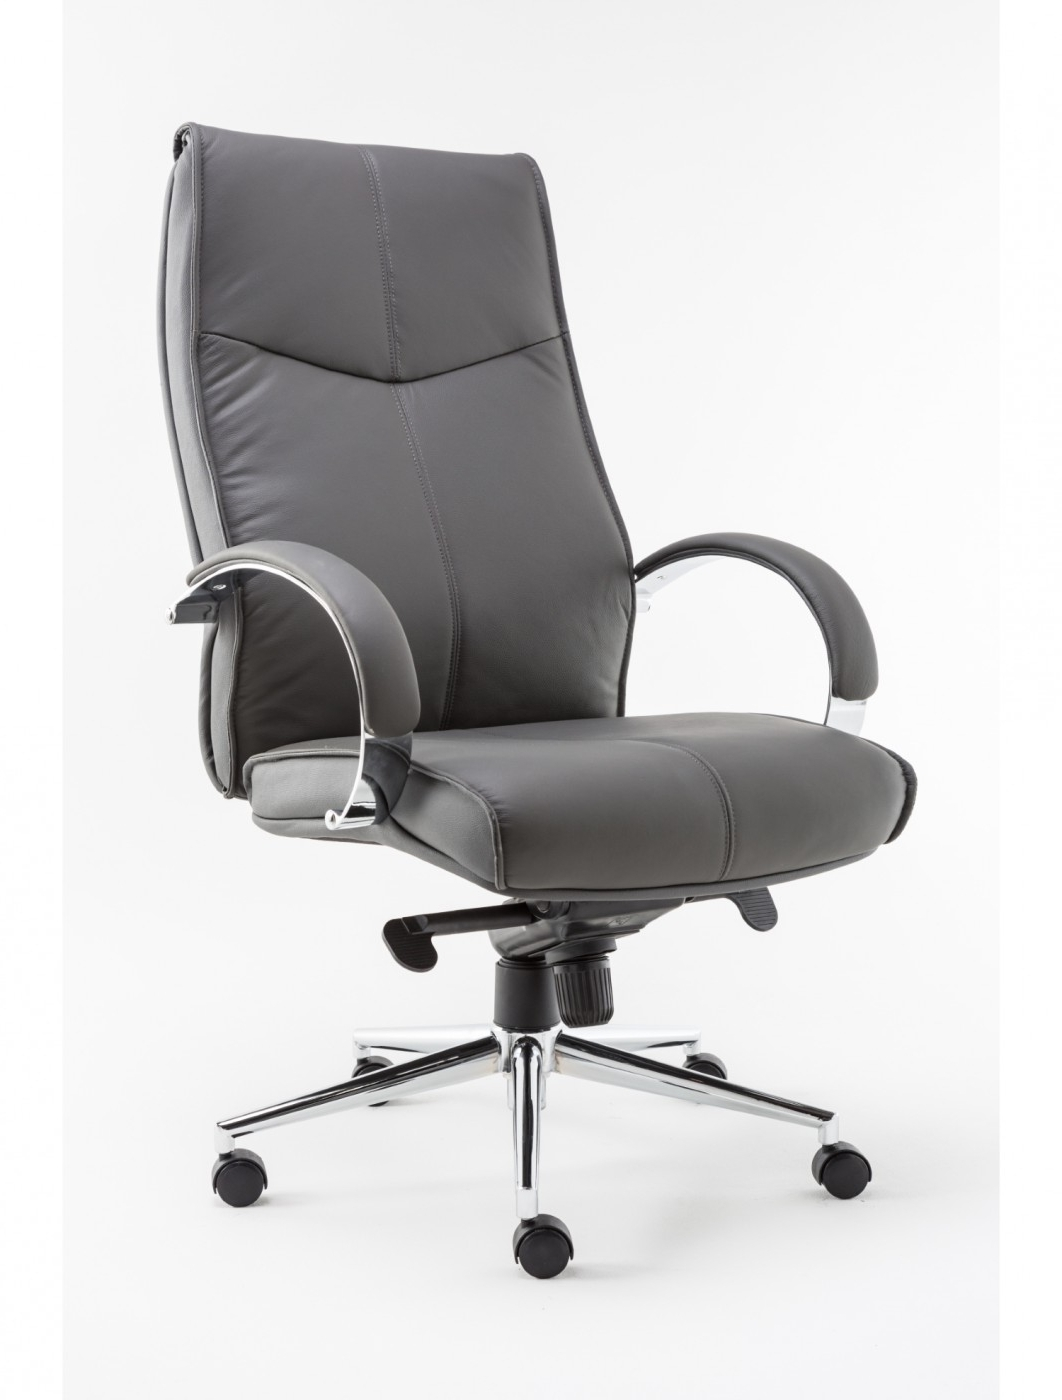 Black Executive Office Chairs Inside Well Liked Alphason Verona Executive Office Chair Aoc1019Gry (View 8 of 20)